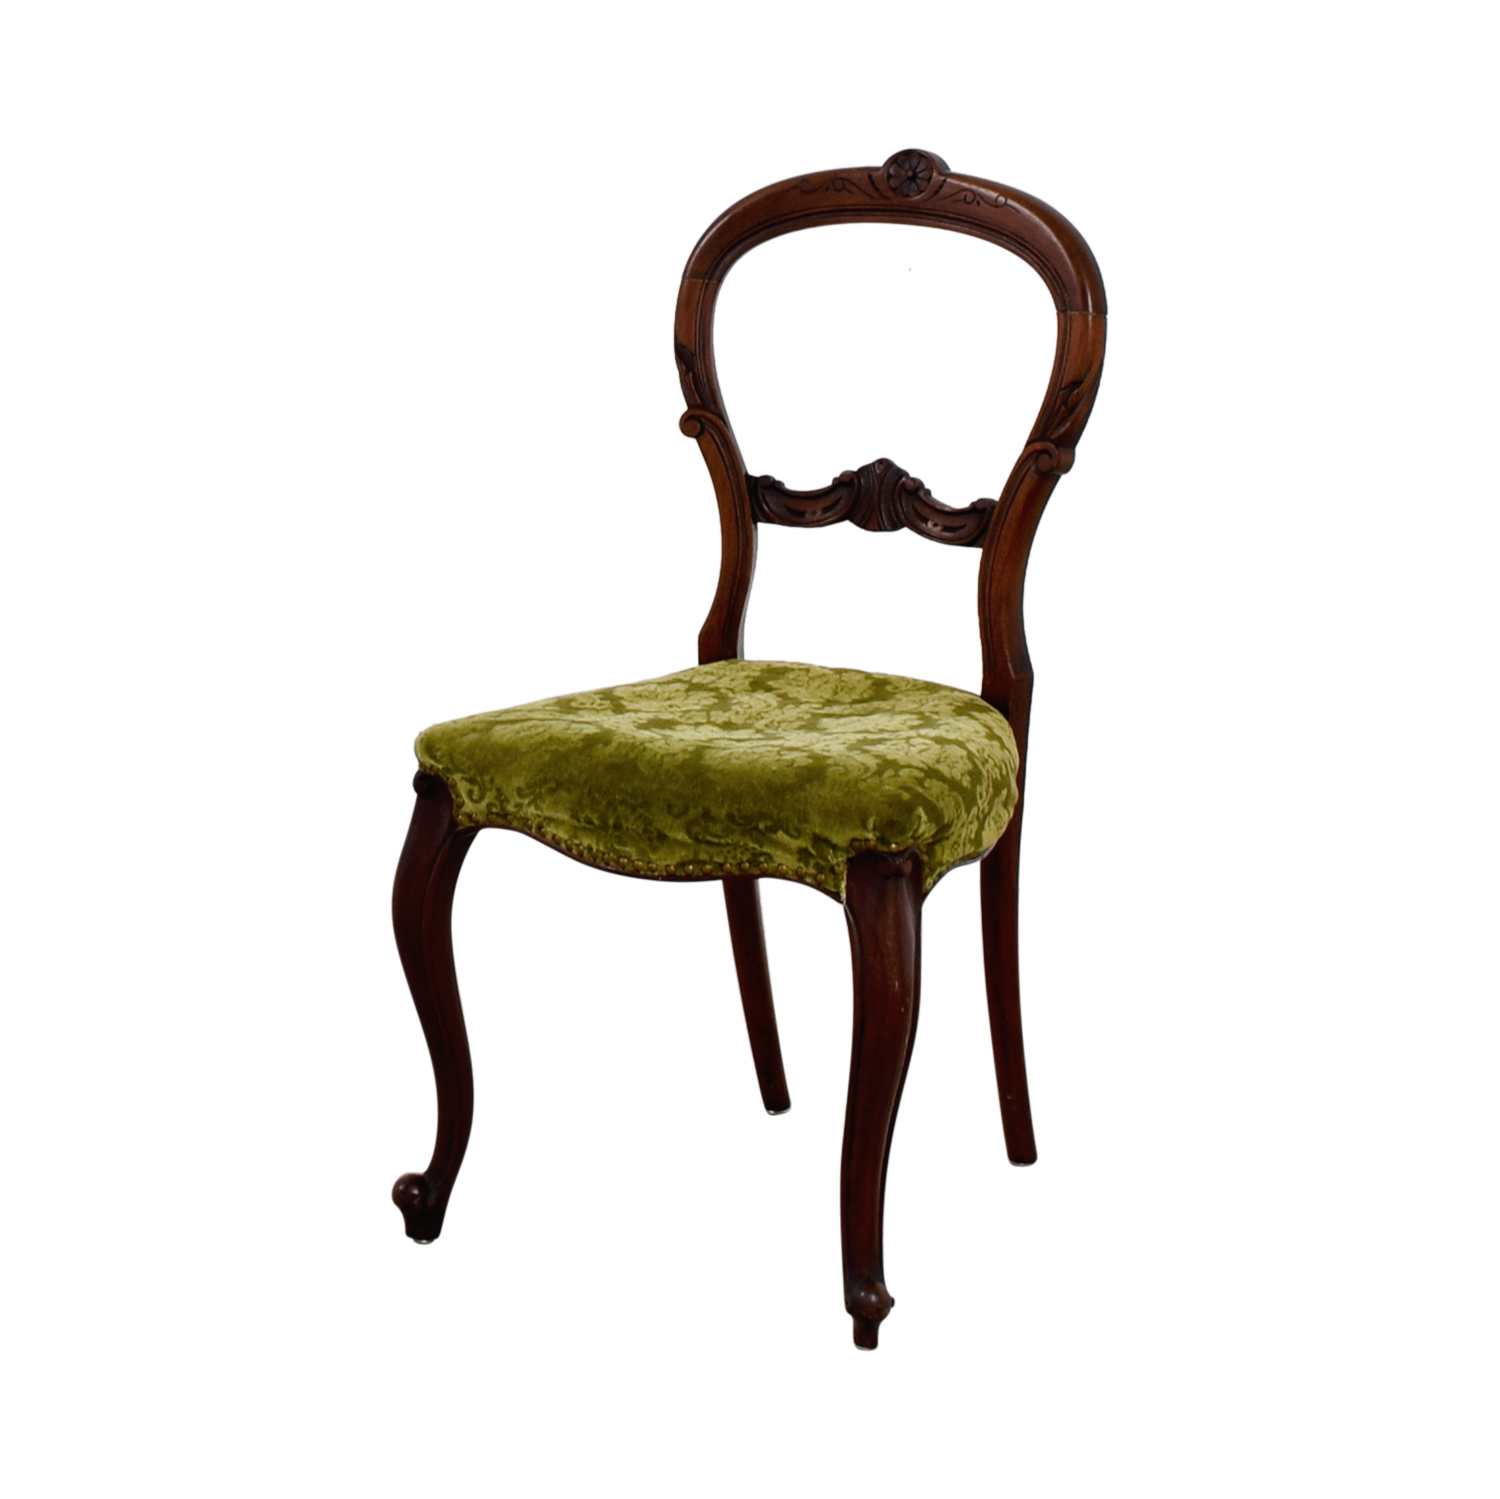 90 off antique green velvet wood chair chairs. Black Bedroom Furniture Sets. Home Design Ideas